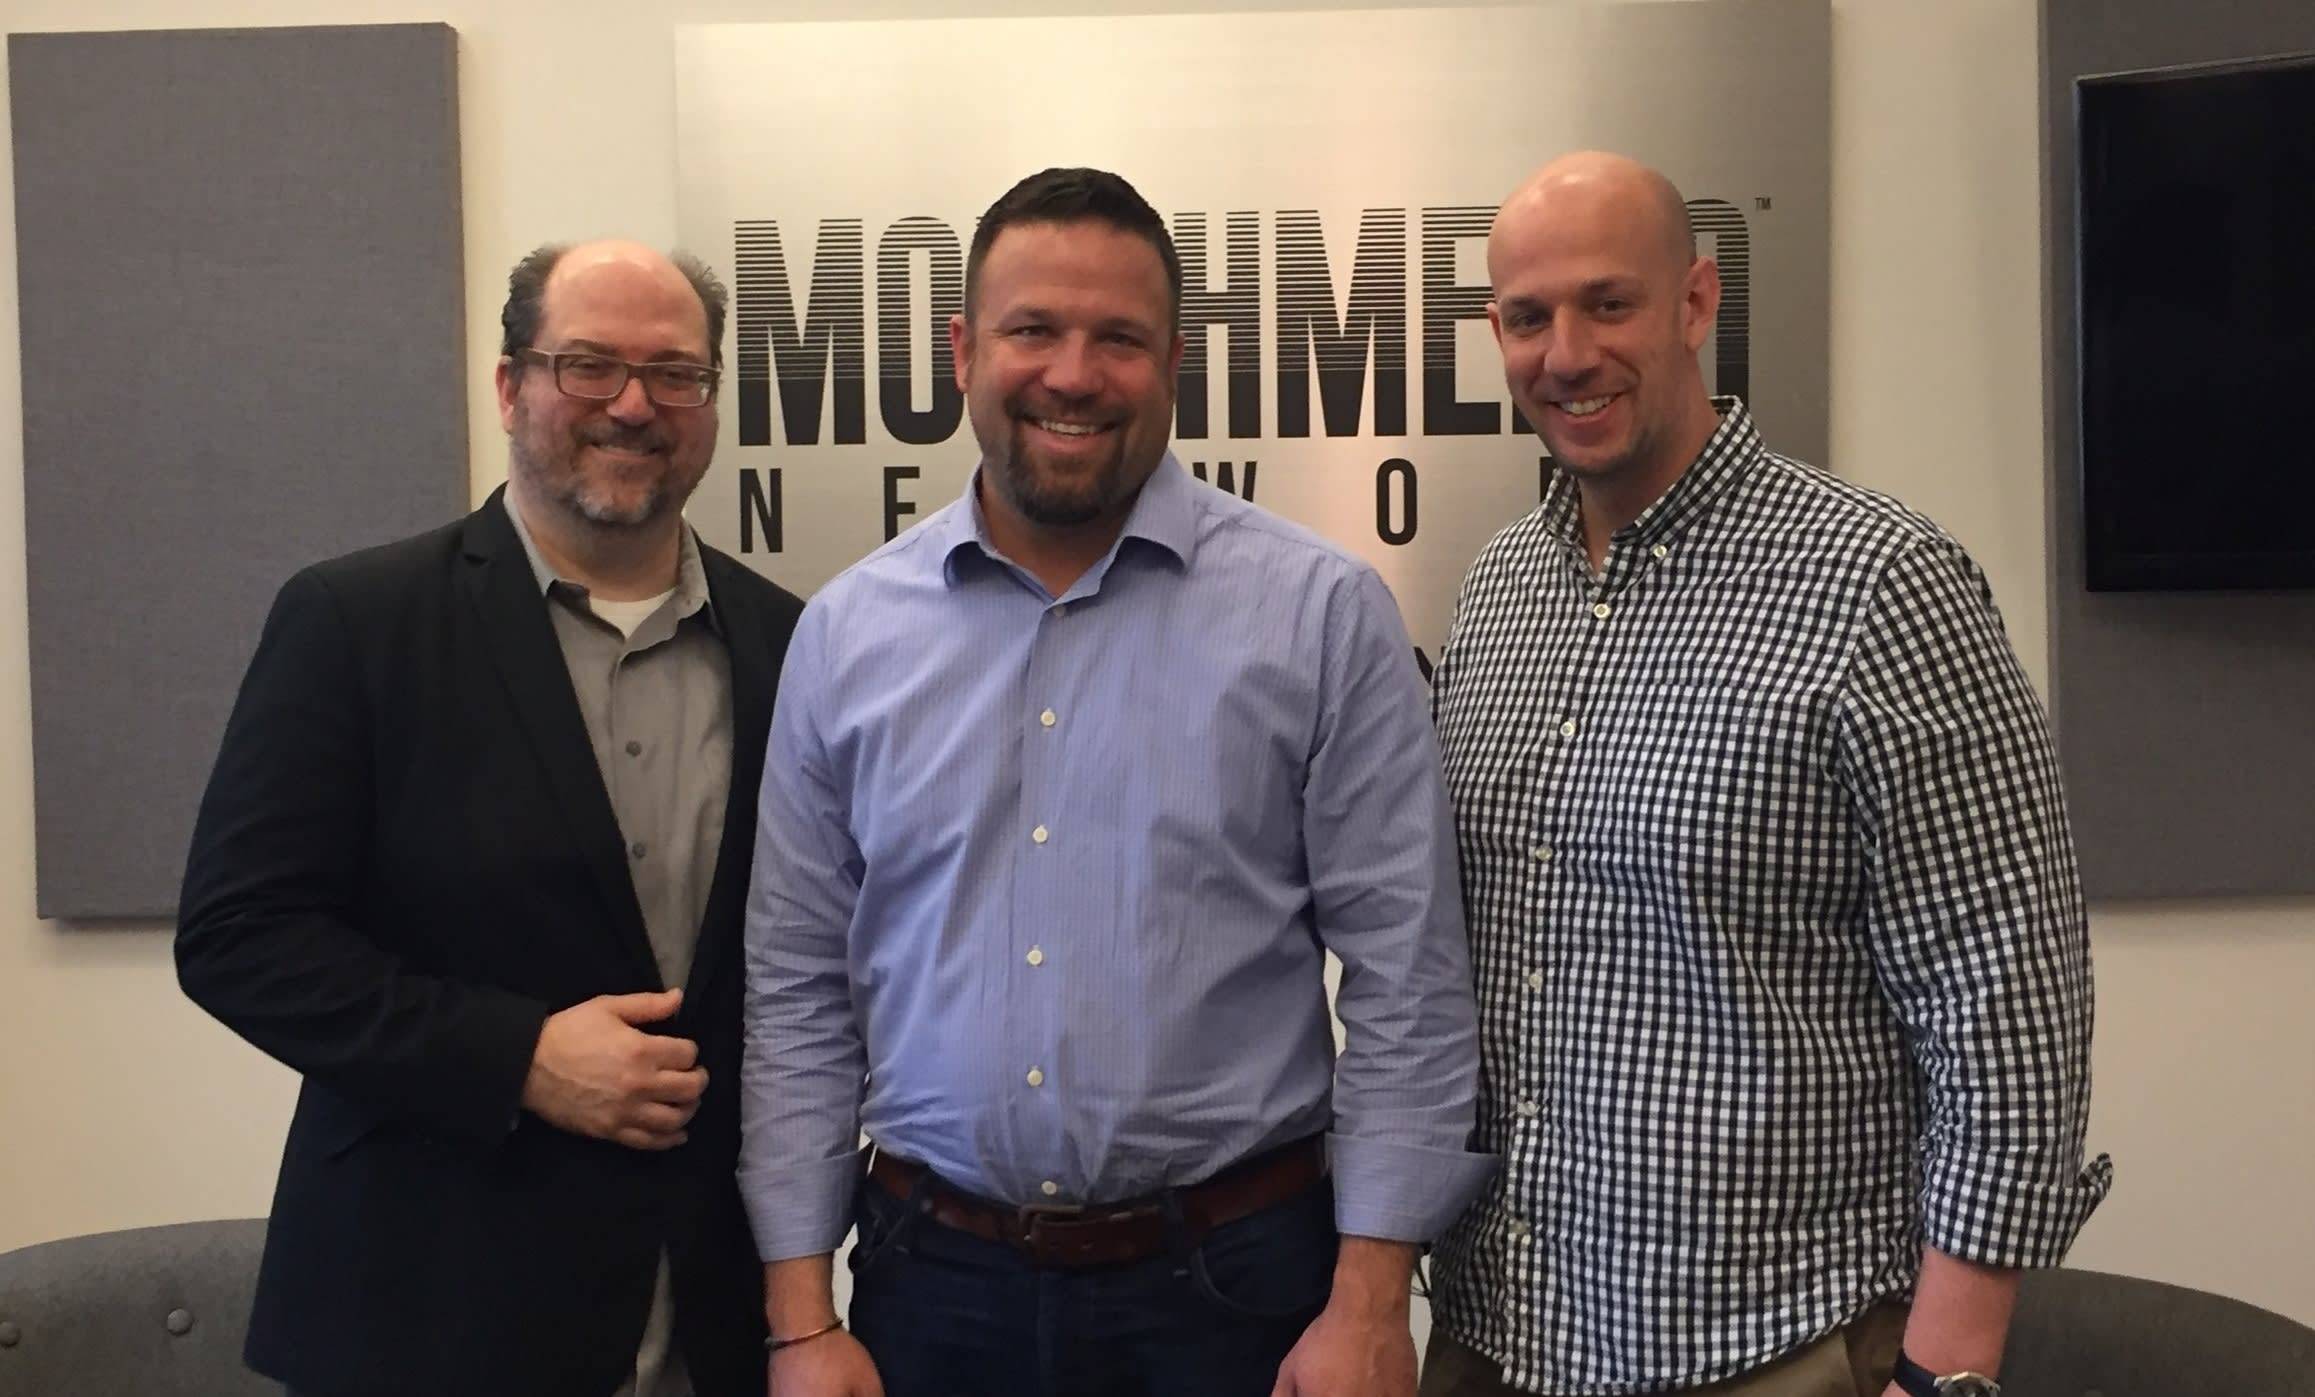 VP of Real Estate, Chris Avery, Chats Updater on the 'Real Estate is Your Business' Podcast